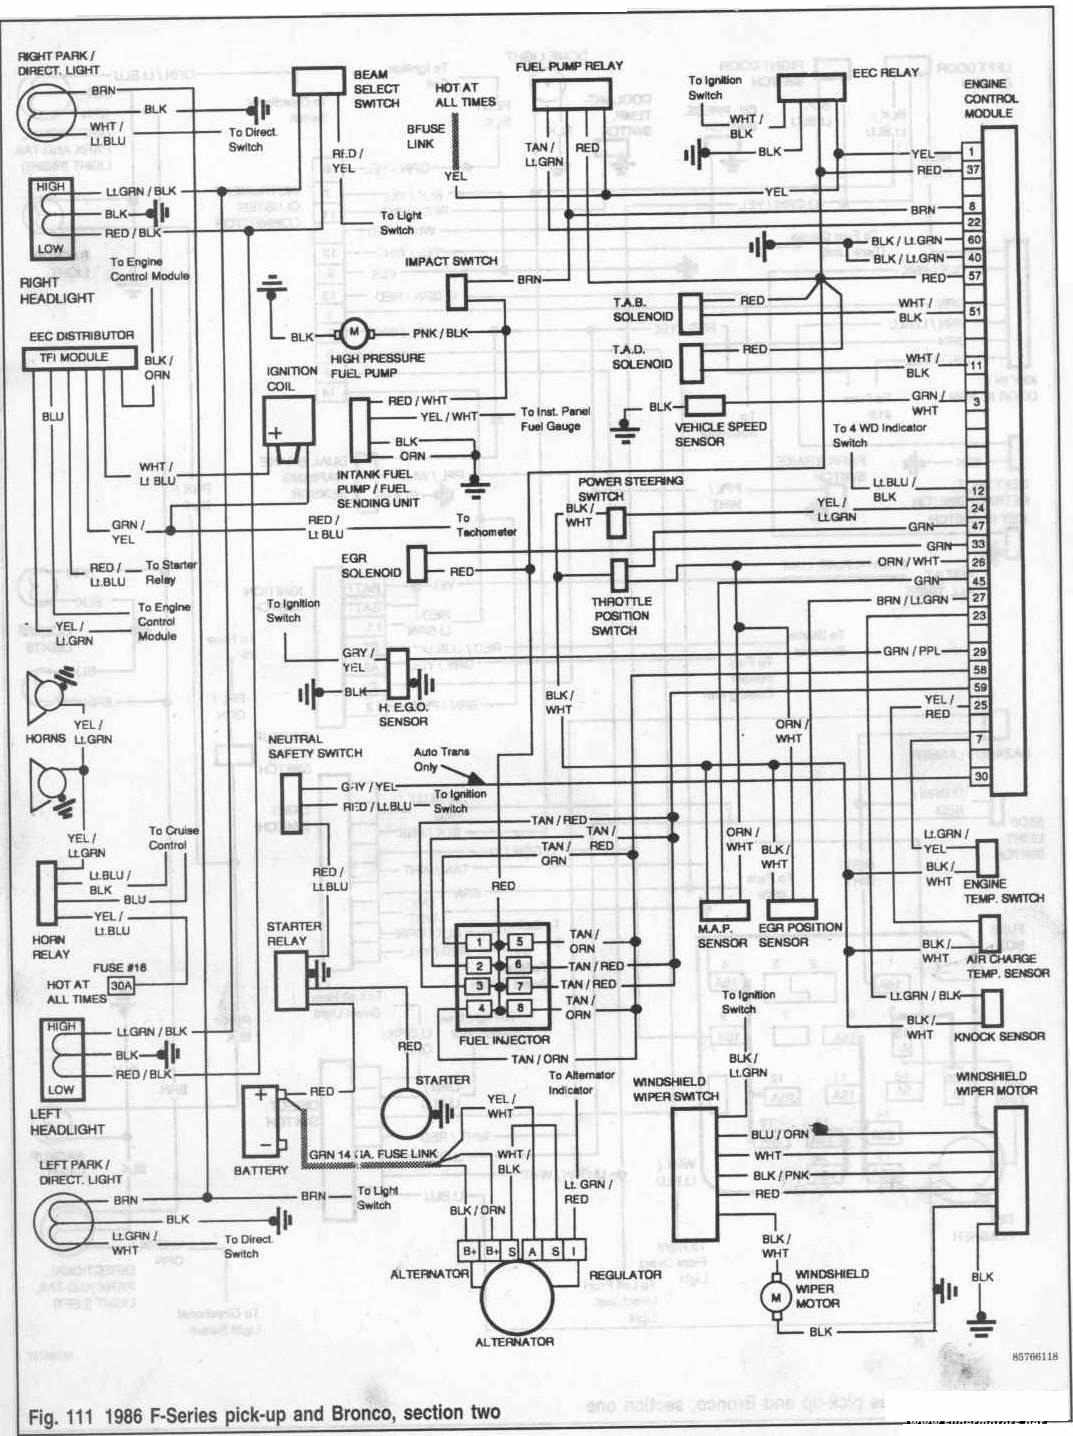 1990 Ford Bronco Radio Wiring Diagram Archive Of Automotive Truck 1989 About Rh Medijagmbbs Com